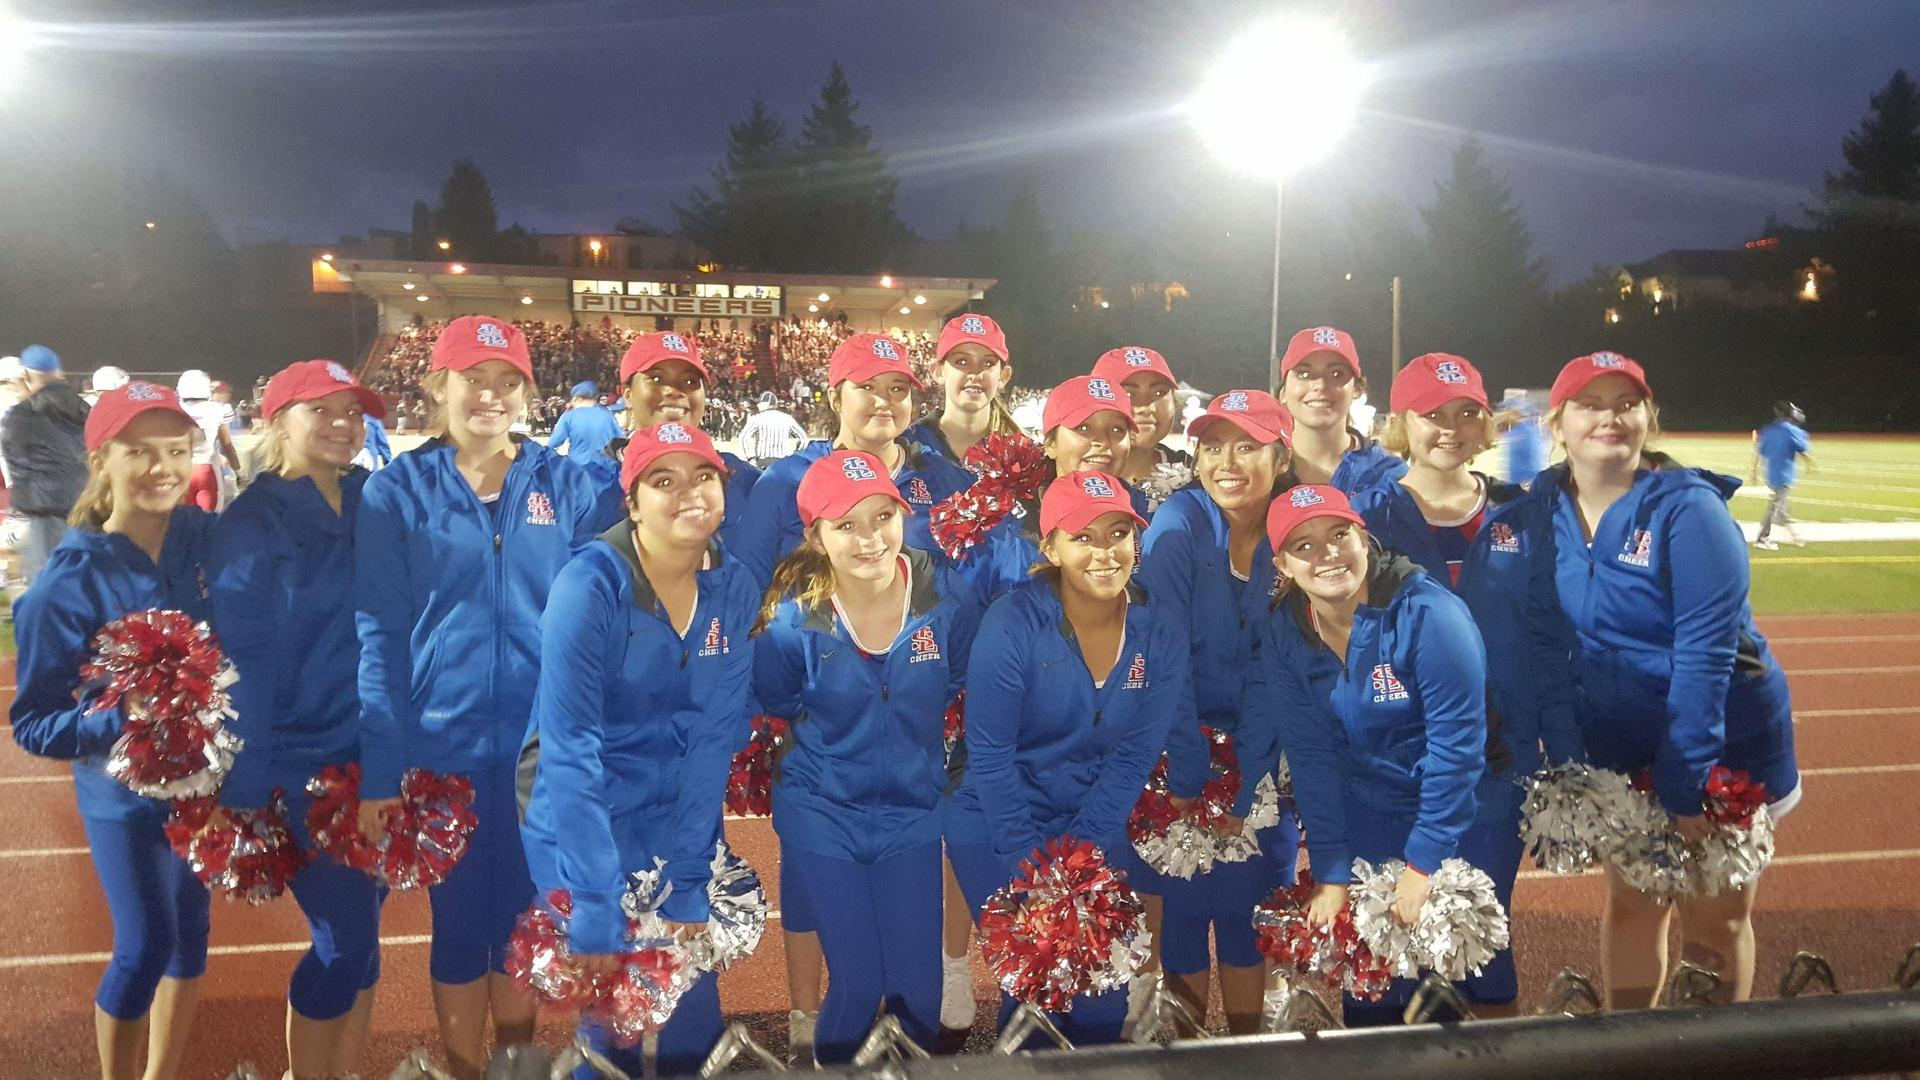 cheer squad at evening football game